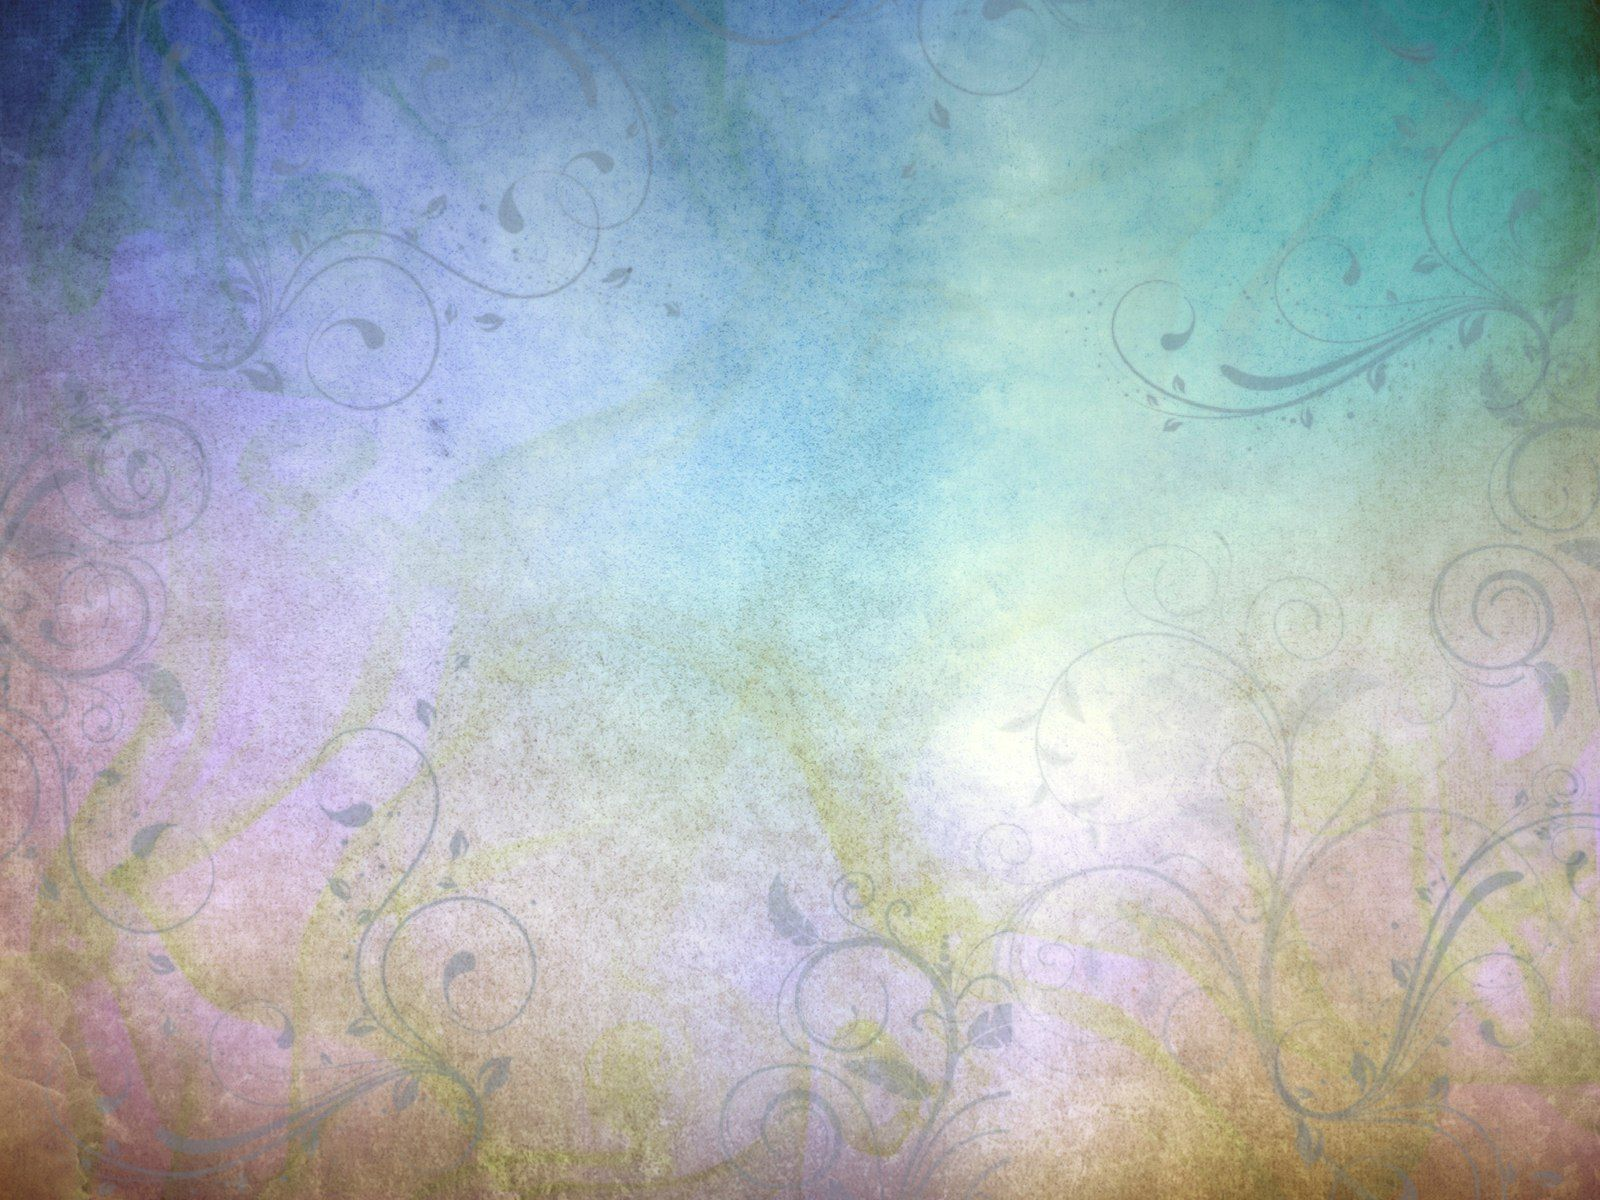 ppt background vintage texture abstract backgrounds HD